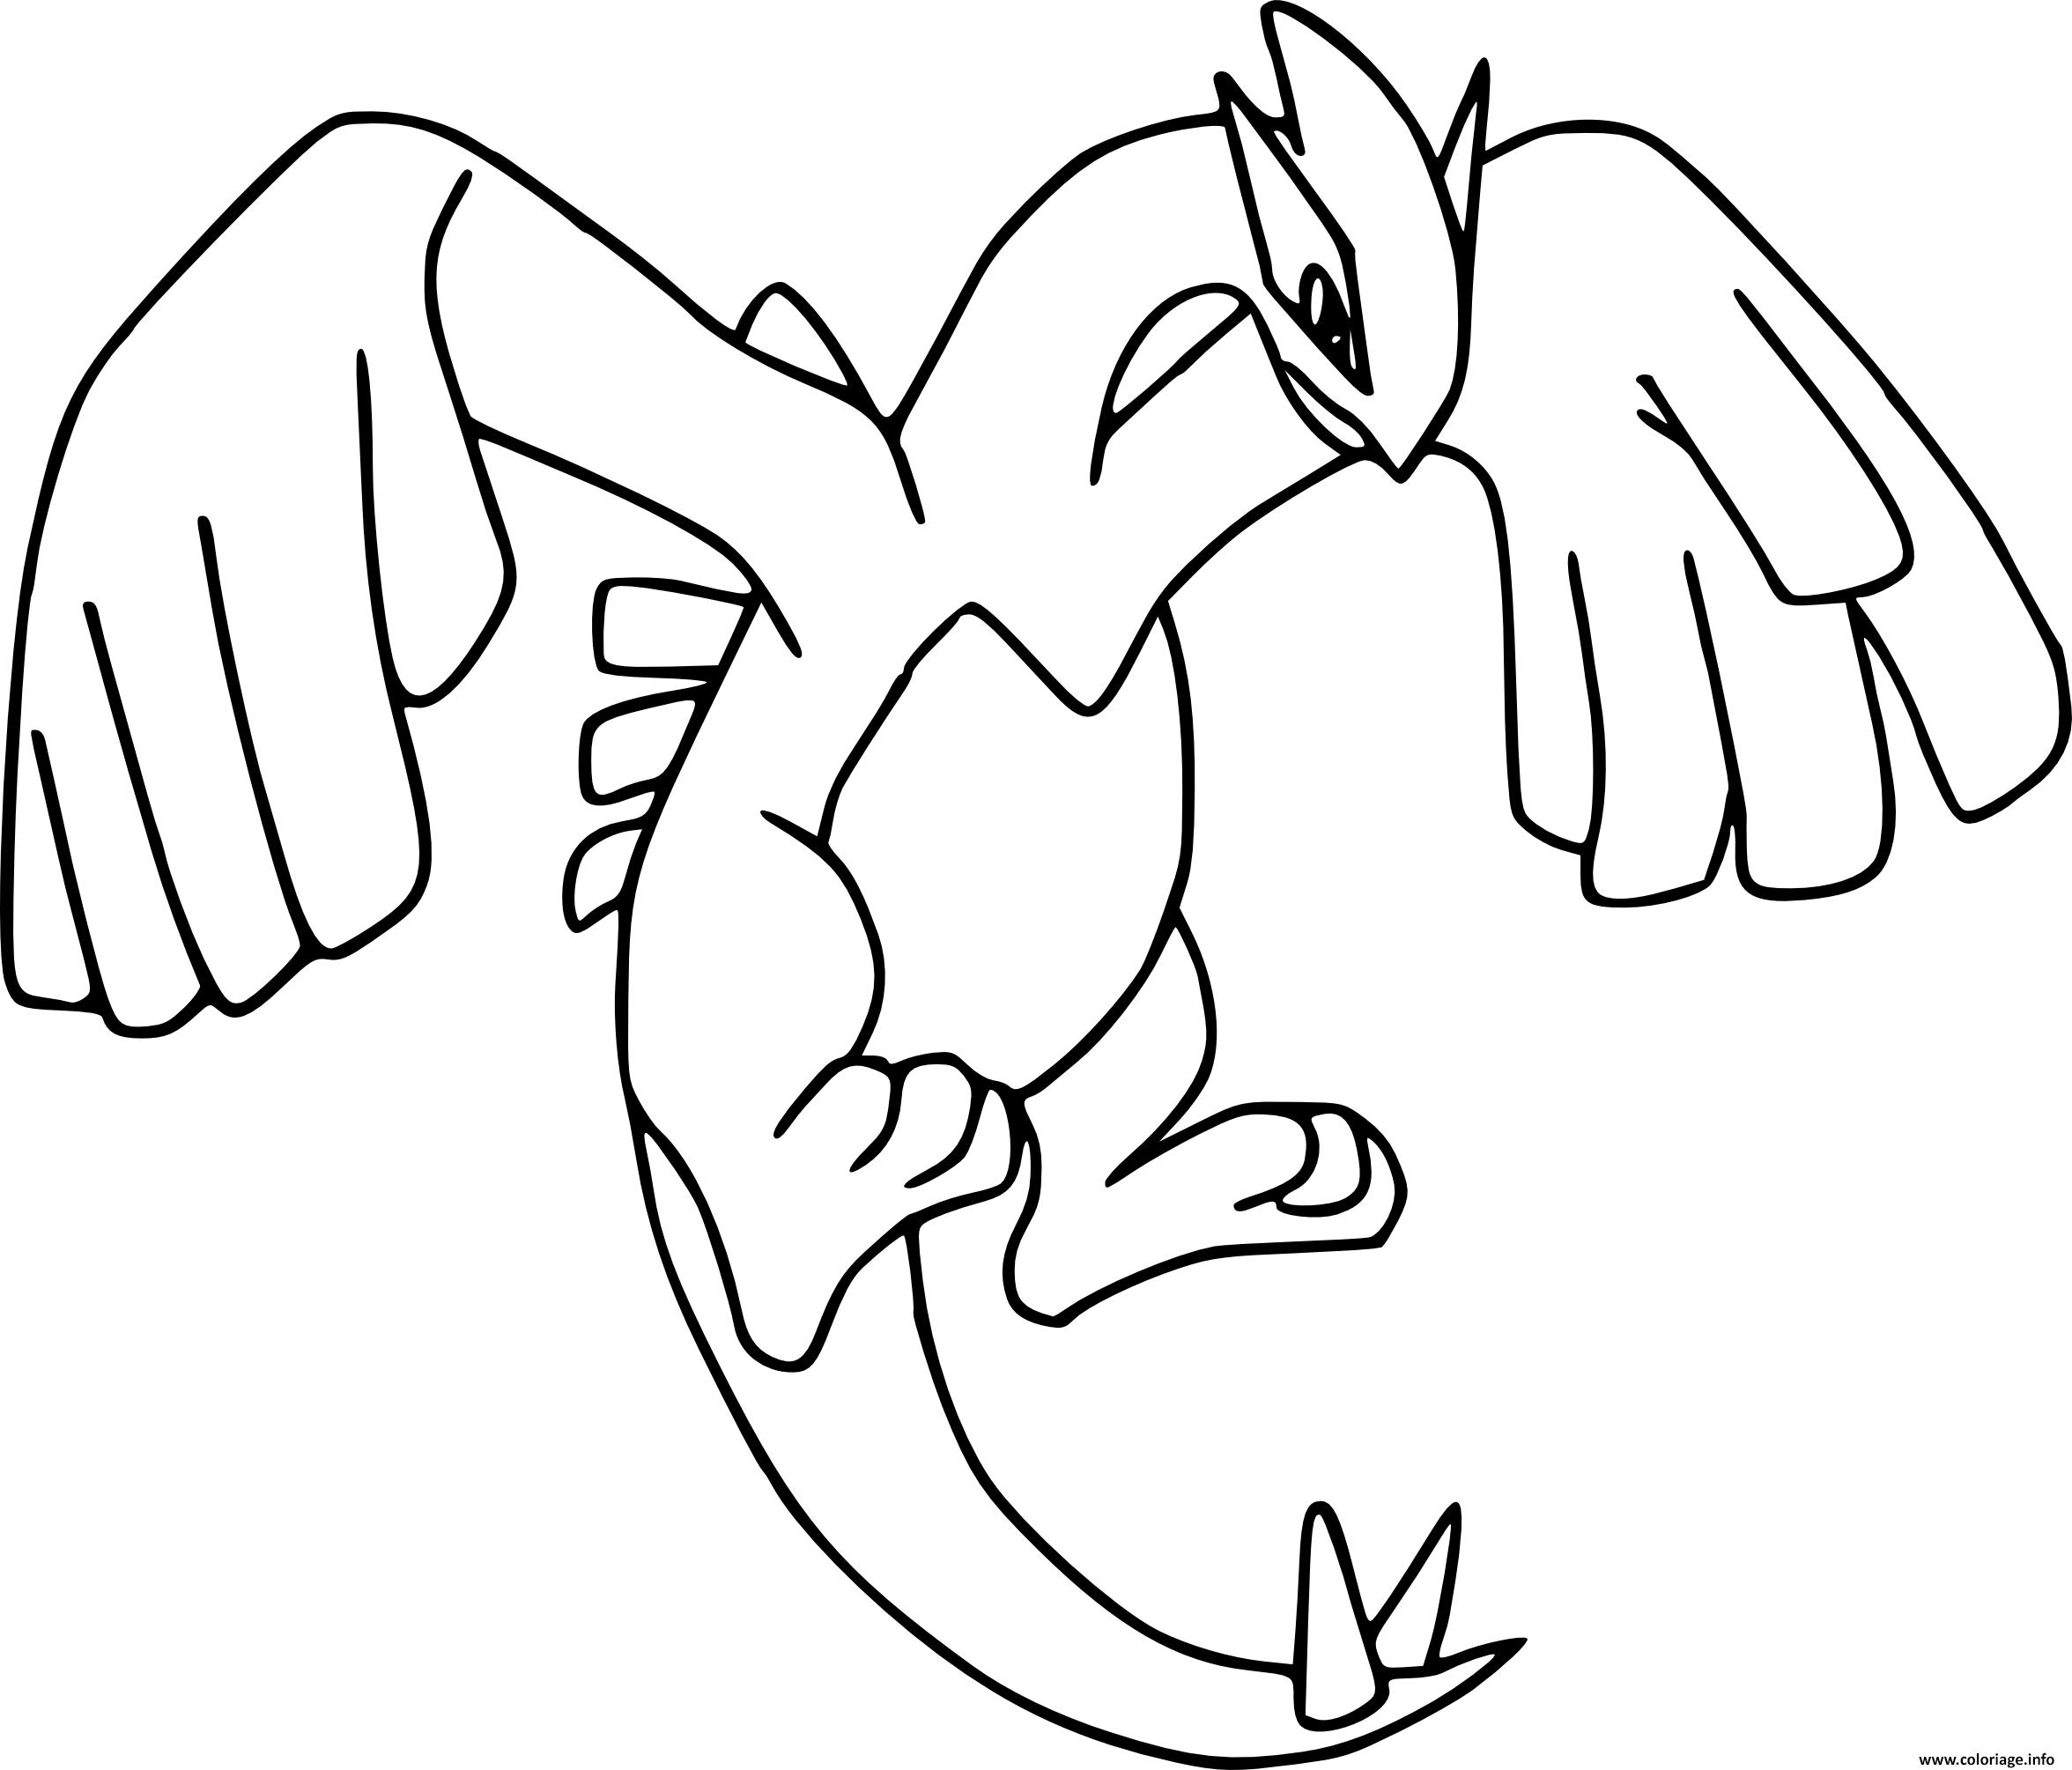 Coloriage pokemon legendaire lugia dessin - Dessins de pokemon ...